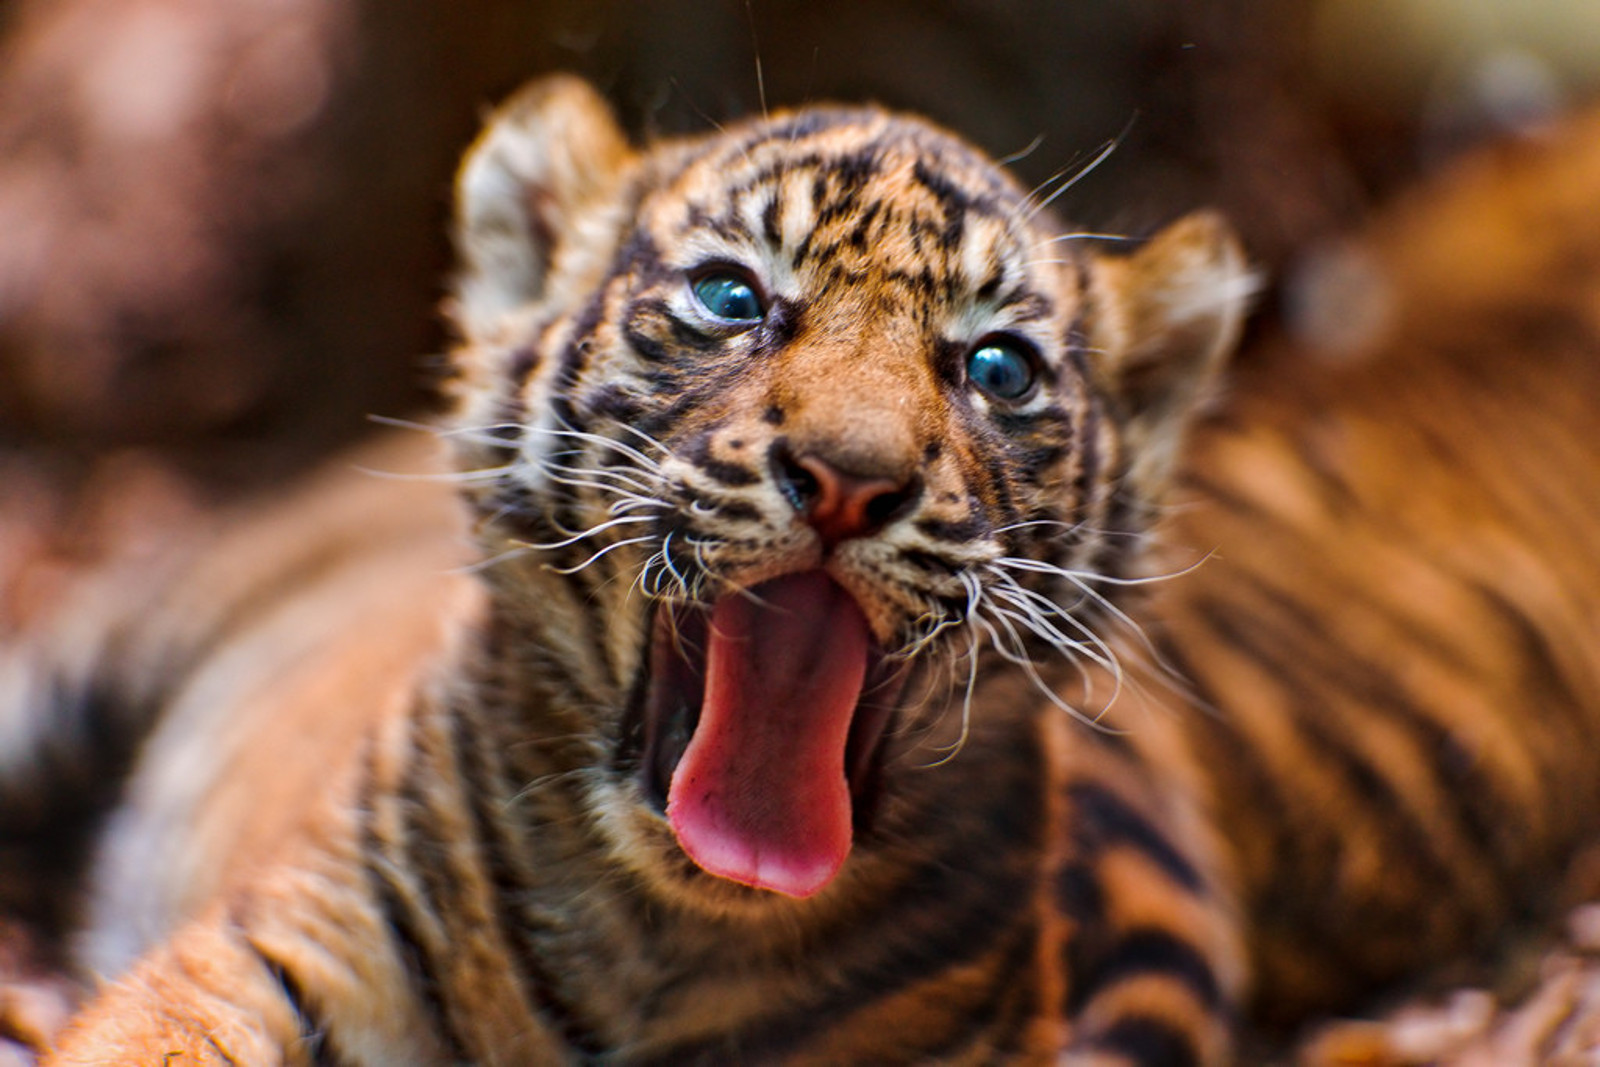 Big Cats Are Not Photo Props! Why a Ban Against Interactions With Captive Cats in Needed ... NOW